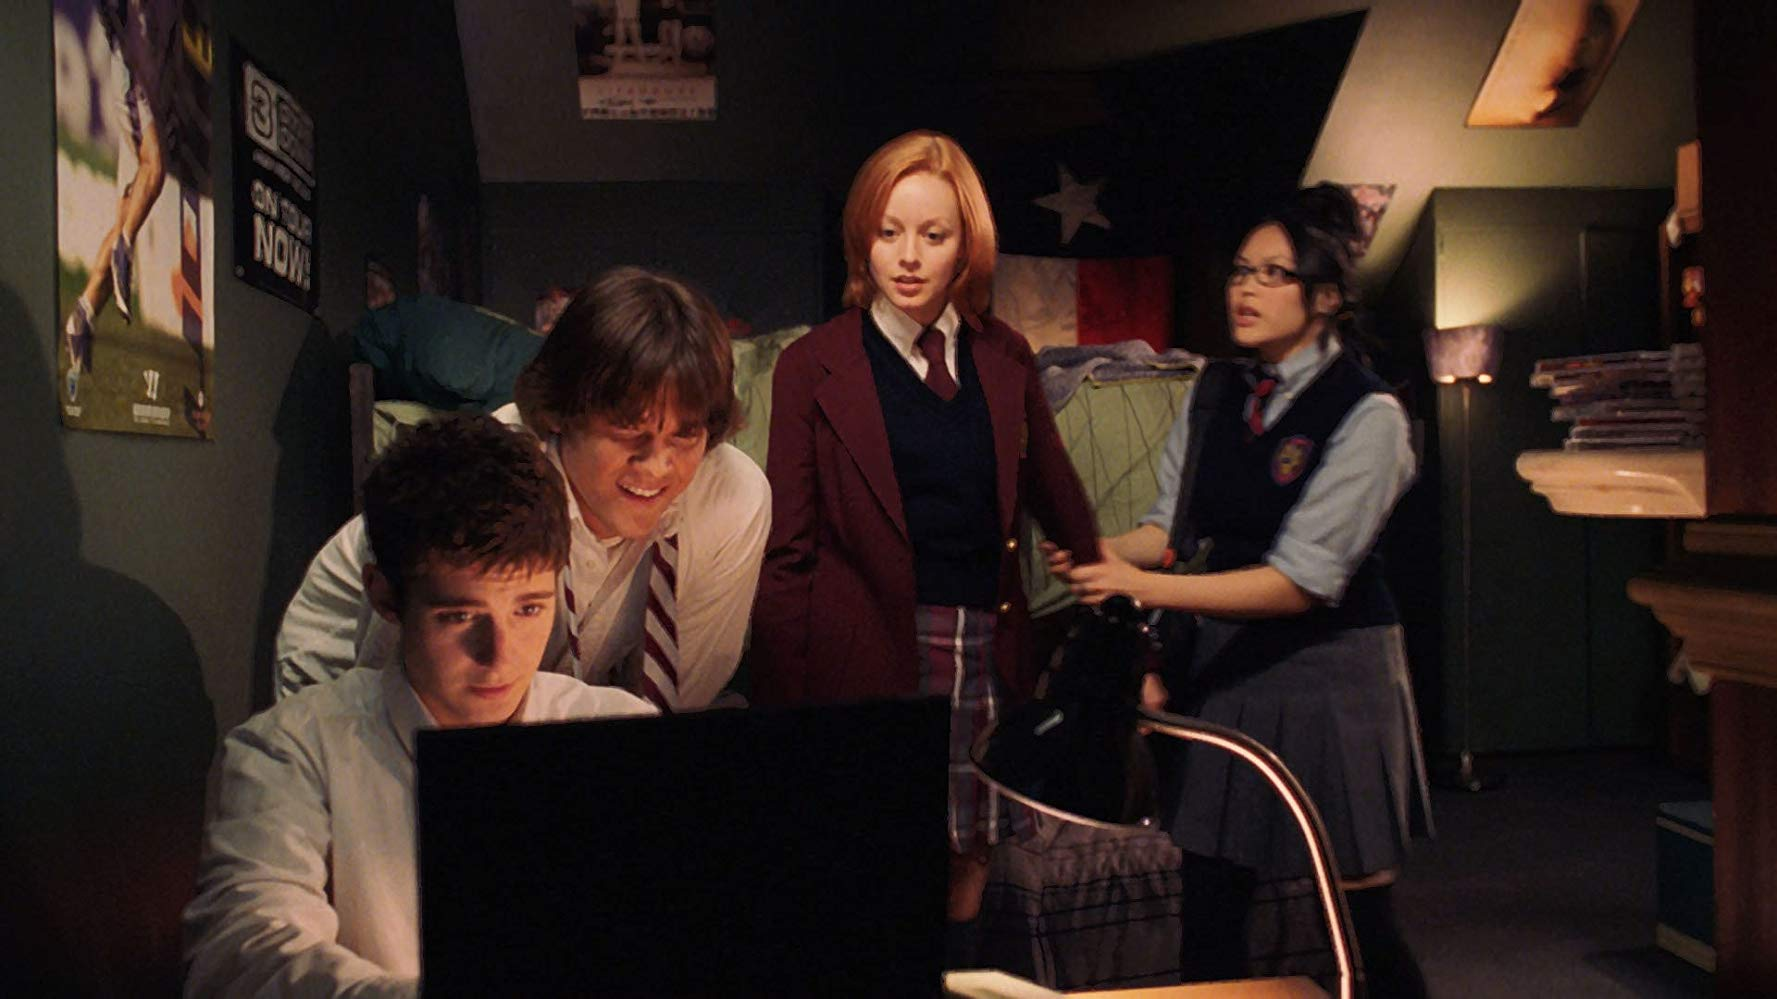 (l to r) Julian Morris, Jared Padalecki, Lindy Booth and Kristy Wu in Cry Wolf (2005)